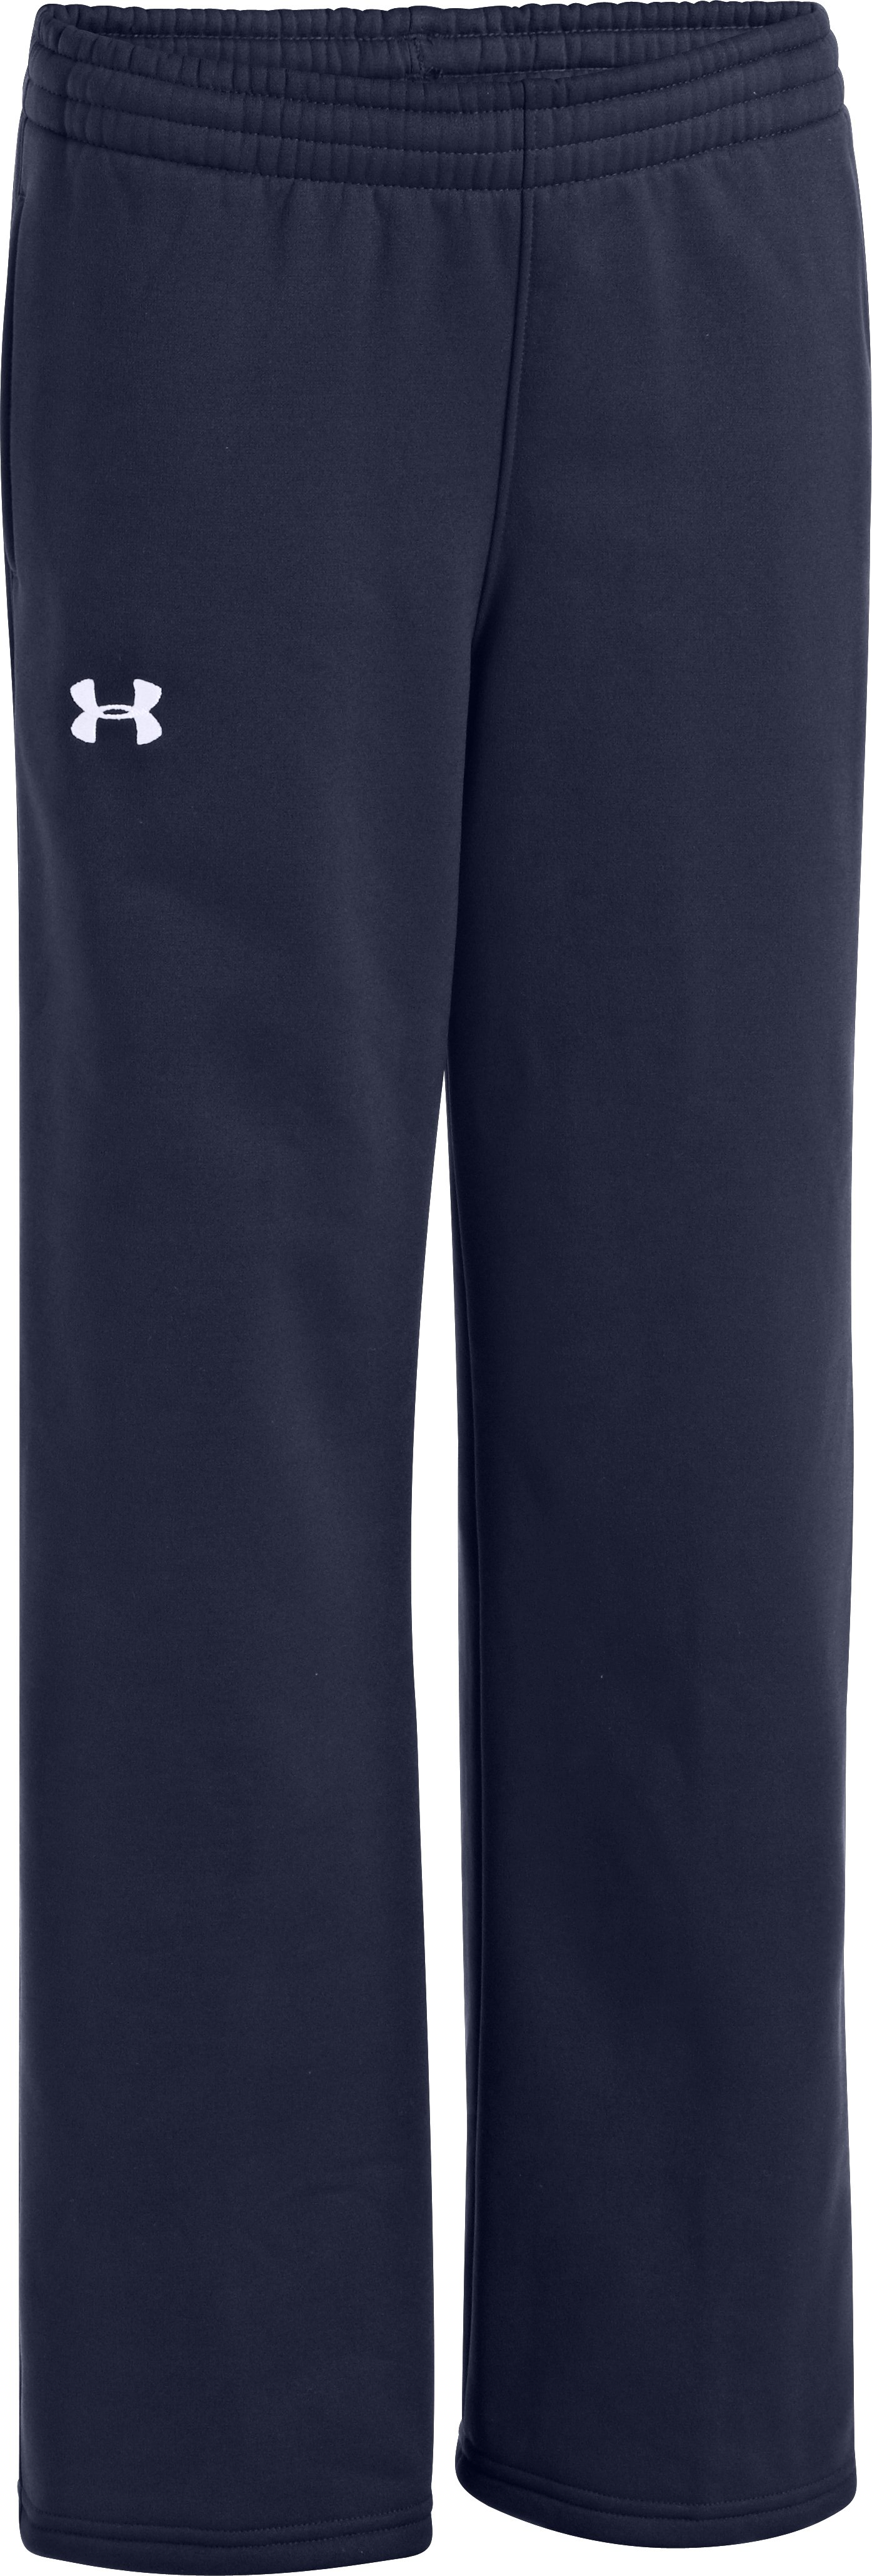 Boys' Armour® Fleece Storm Team Pants, Midnight Navy